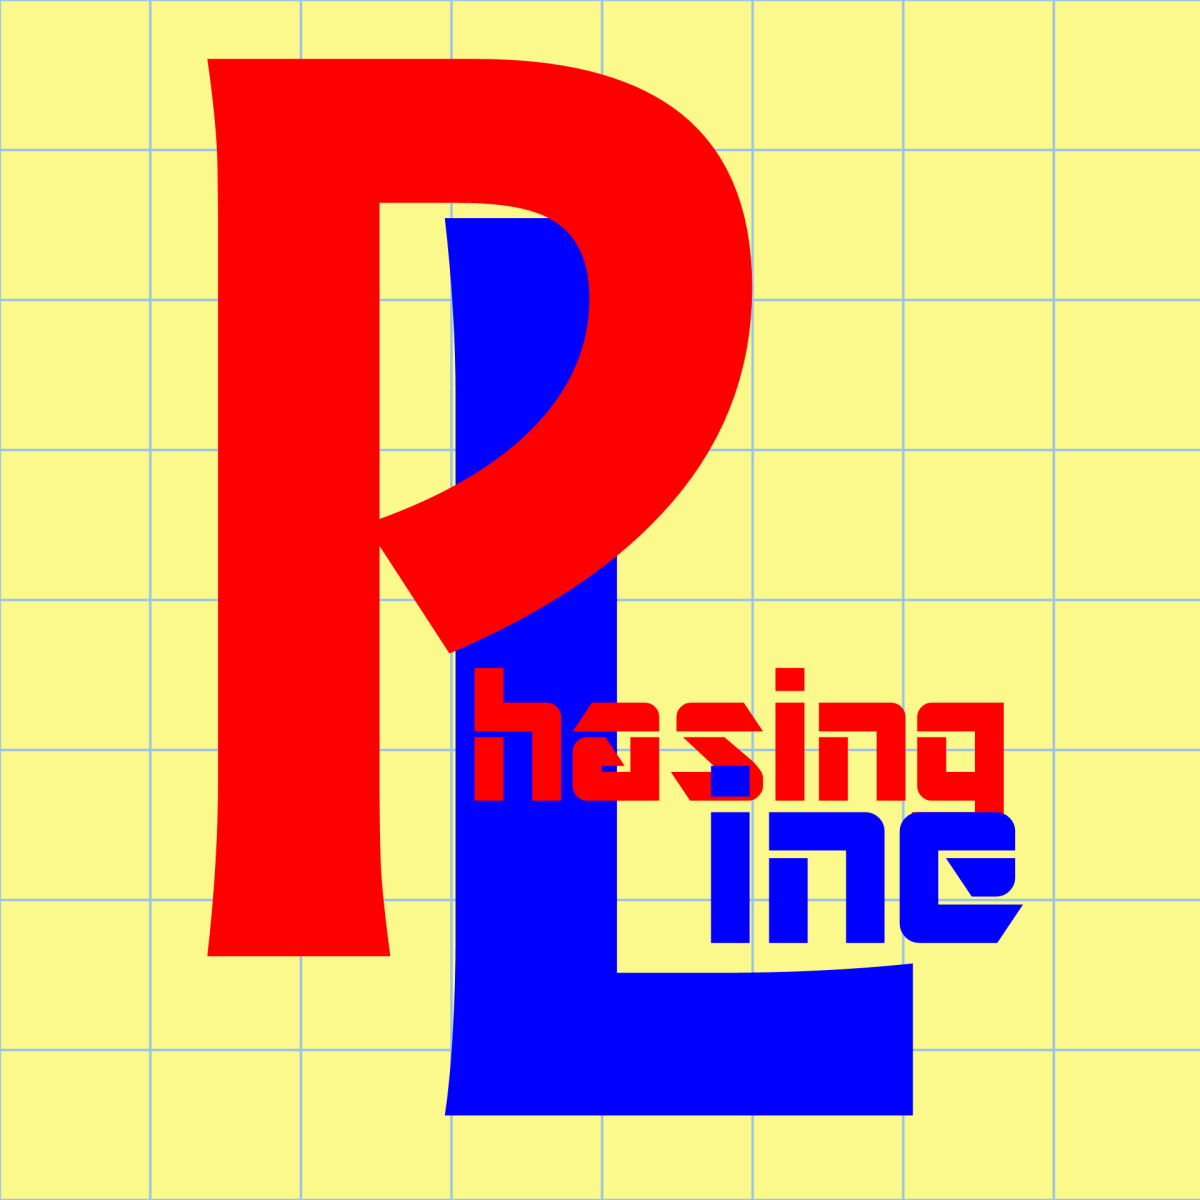 Phasing Line Podcast Episode 2: We're Sweeping Up After Sweepstakes